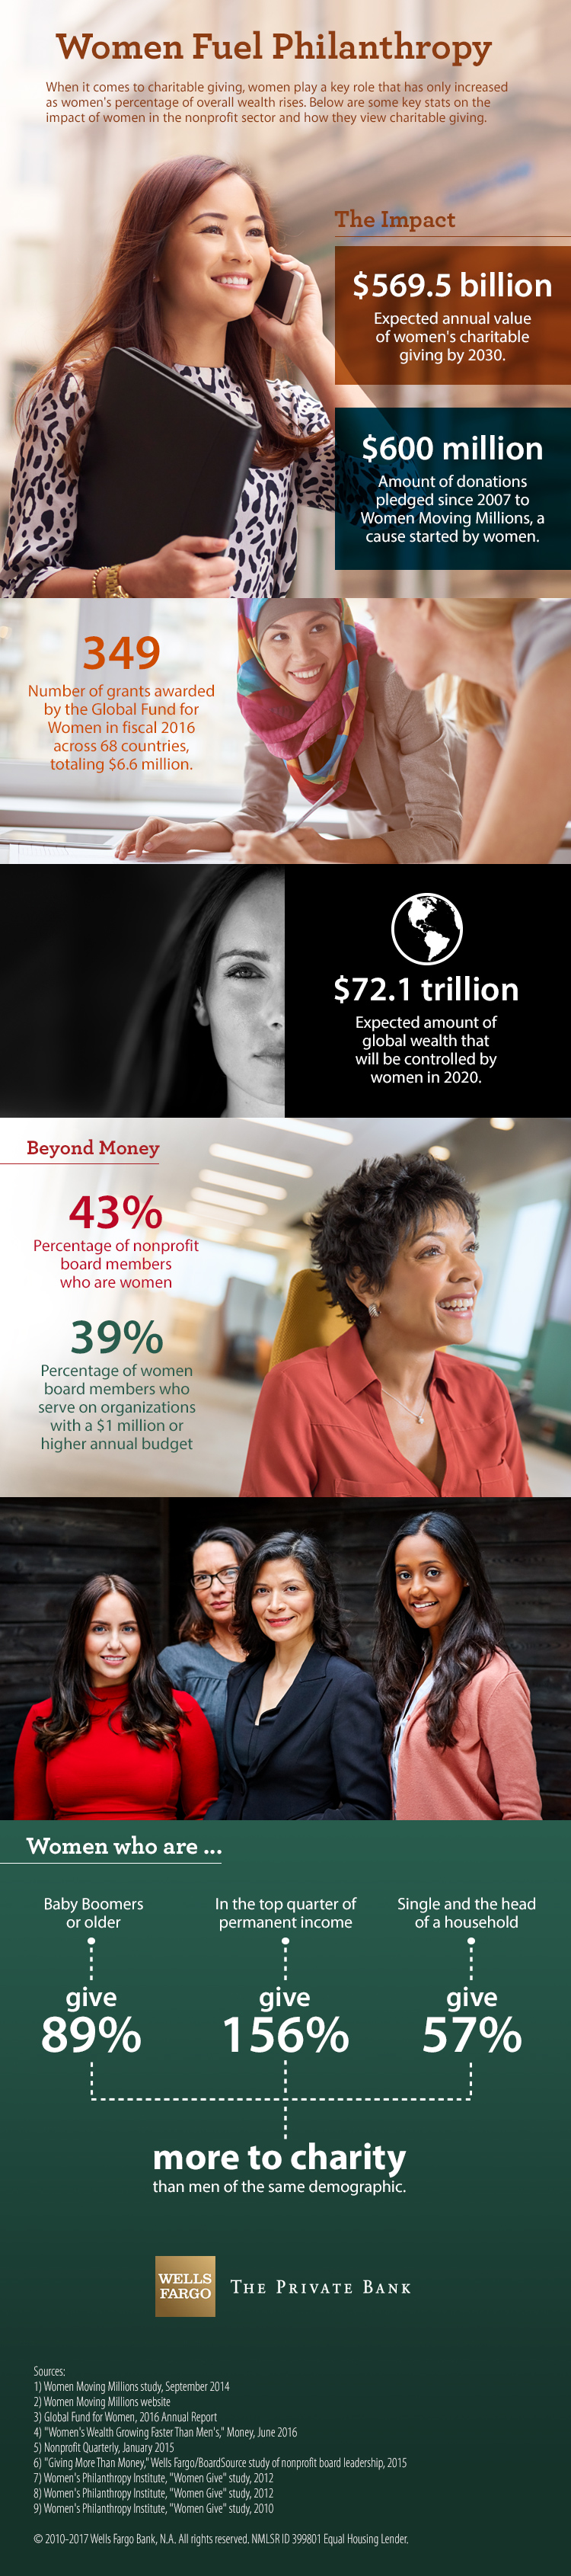 Headline is Women Fuel Philanthropy. When it comes to charitable giving, women play a key role that has only increased as women's percentage of overall wealth rises. Below are some key stats on the impact of women in the nonprofit sector and how they view charitable giving. The first section is called The Impact, and the first stat says the expected annual value of women's charitable giving by 2030 is $569.5 billion. Since 2007, $600 million of donations have been pledged to Women Moving Millions, a cause started by women. In fiscal 2016, the Global Fund for Women awarded 349 grants across 68 countries, totaling $6.6 million. And the expected amount of global wealth that will be controlled by women in 2020 is $72.1 trillion. The second section is called Beyond Money. Stats say that 43 percent of nonprofit board members are women, and 39 percent of women board members serve on organizations with a $1 million or higher annual budget. The final section details some differences between men and women. Women who are Baby Boomers or older give 89 percent more to charity than me of the same demographic. Women who are in the top quarter of permanent income give 156 percent more to charity than men in the top quarter of permanent income. Single women who are head of a household give 57 percent more to charity than corresponding men. Sources for the infographic are a Women Moving Millions study from September 2014; the Women Moving Millions website; the Global Fund for Women 2016 Annual Report; a Money magazine story